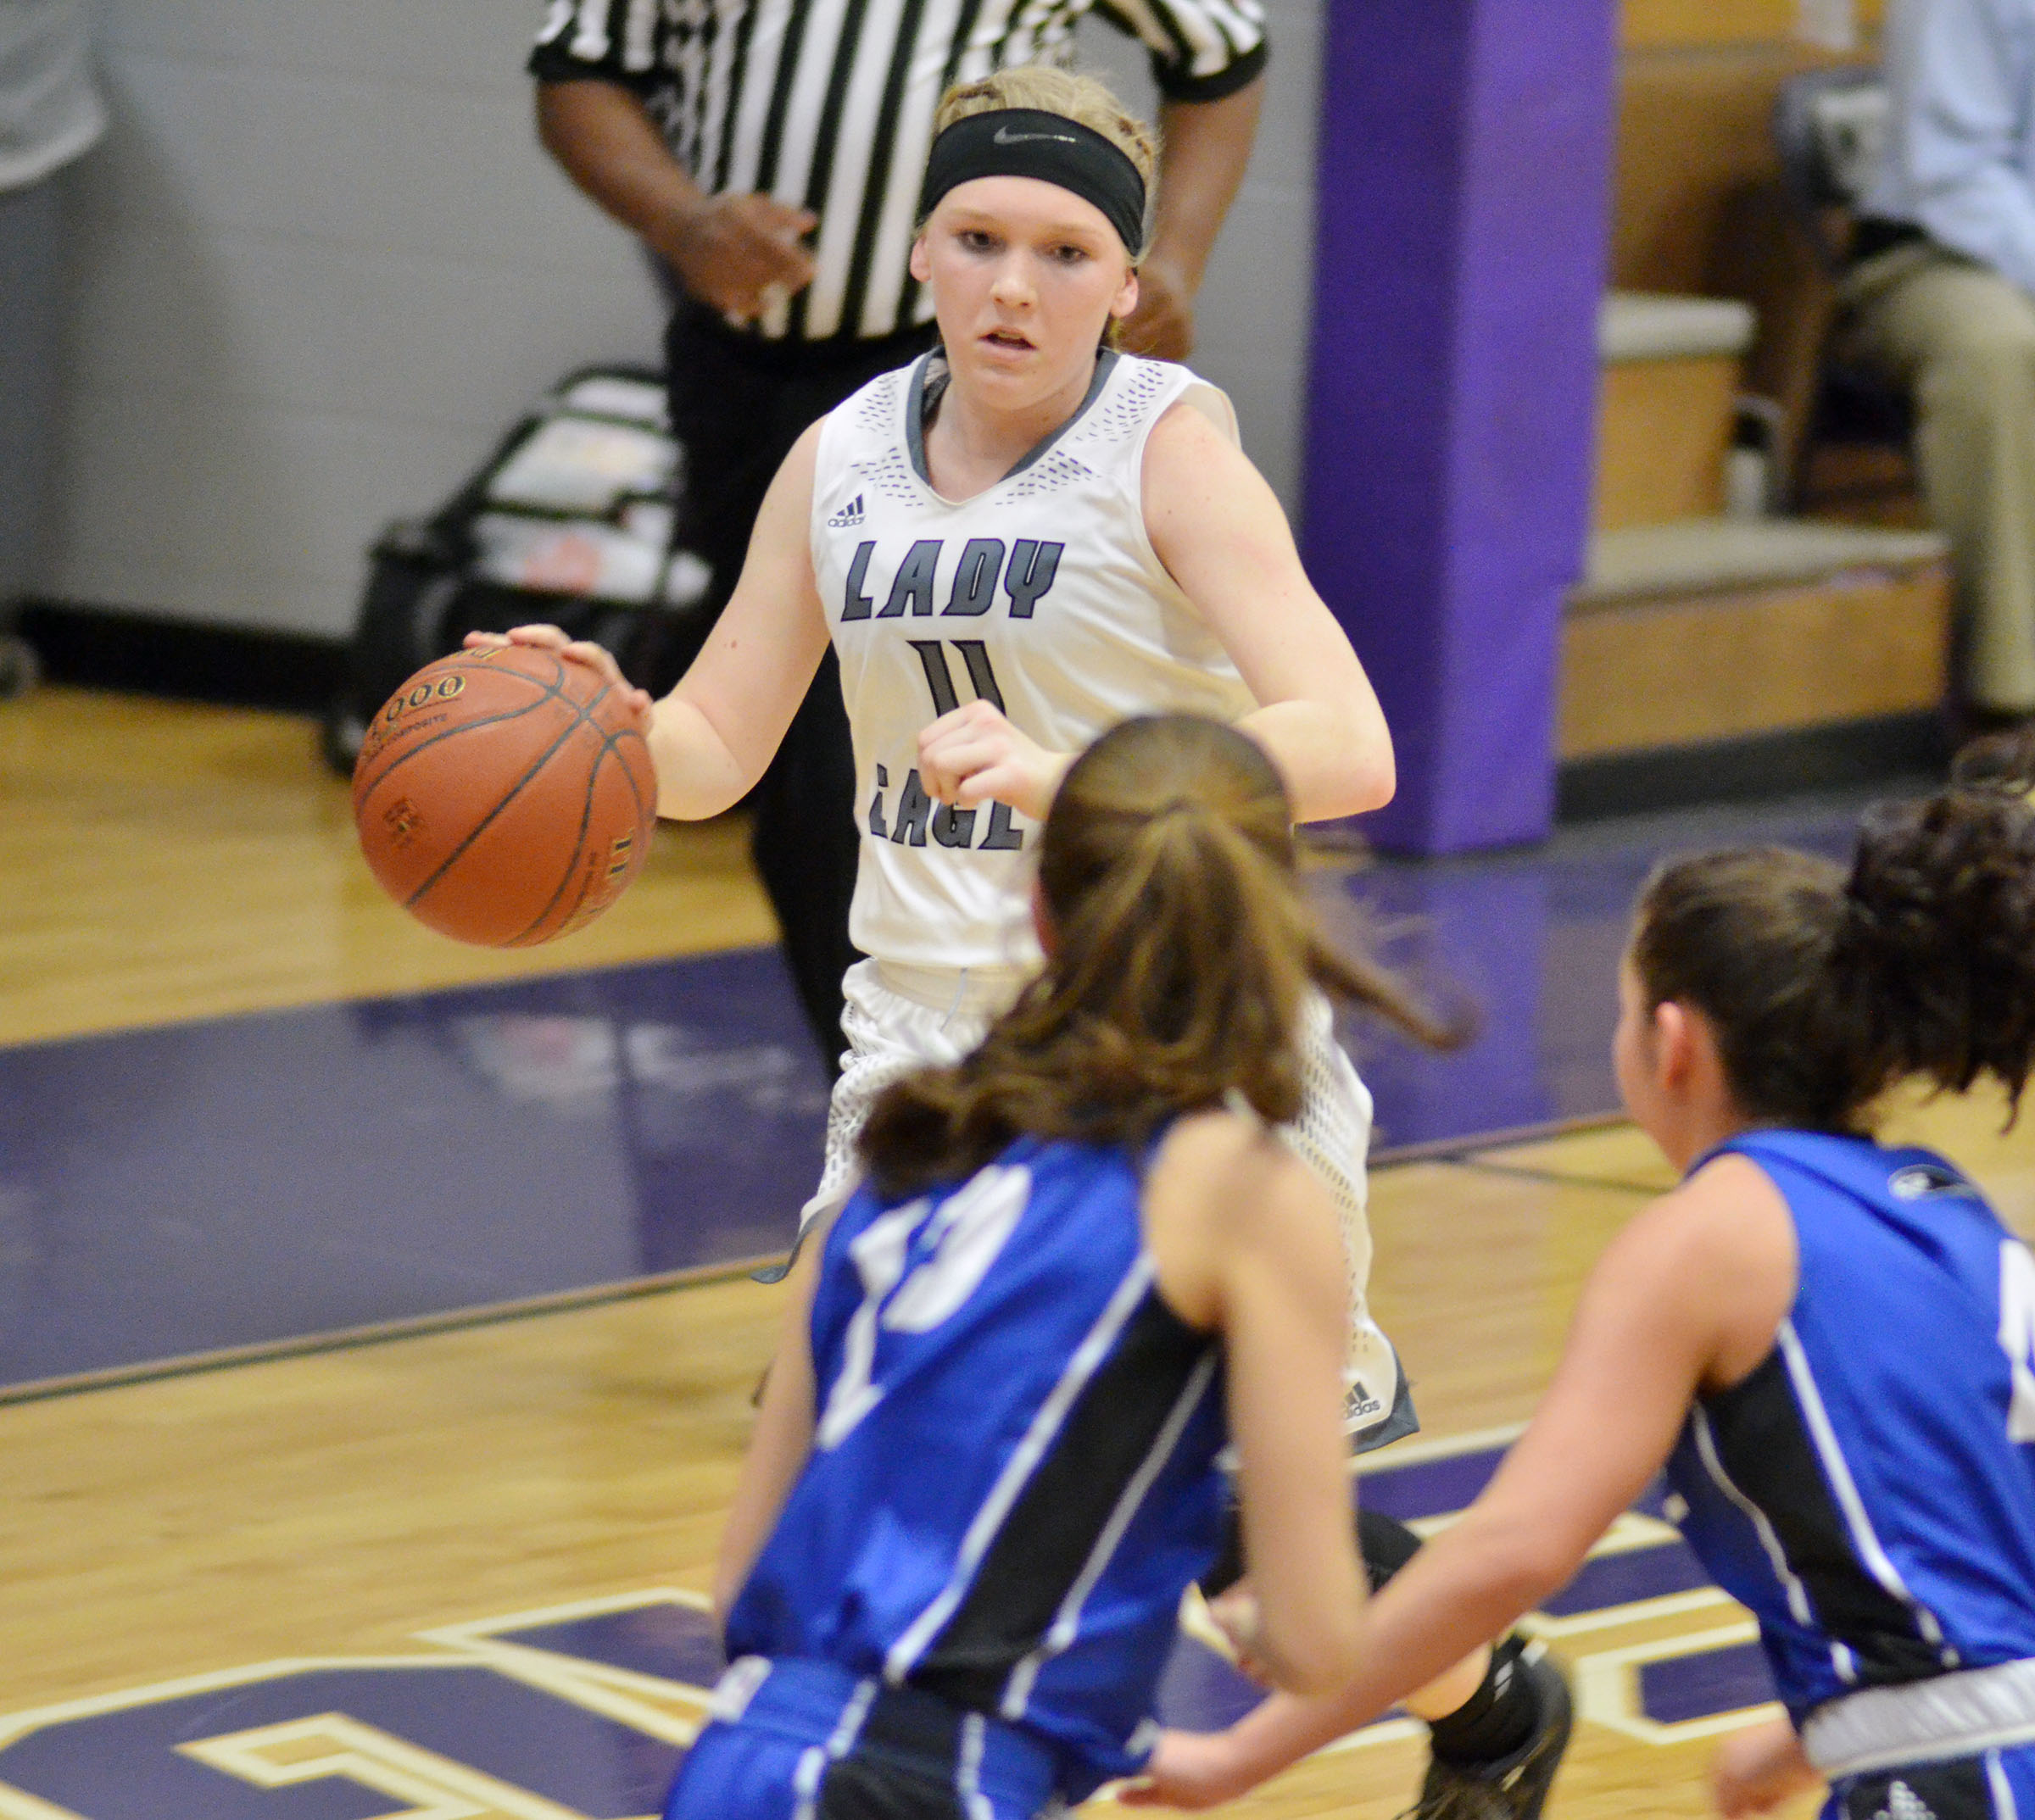 Campbellsville Middle School eighth-grader Catlyn Clausen sets up a play.